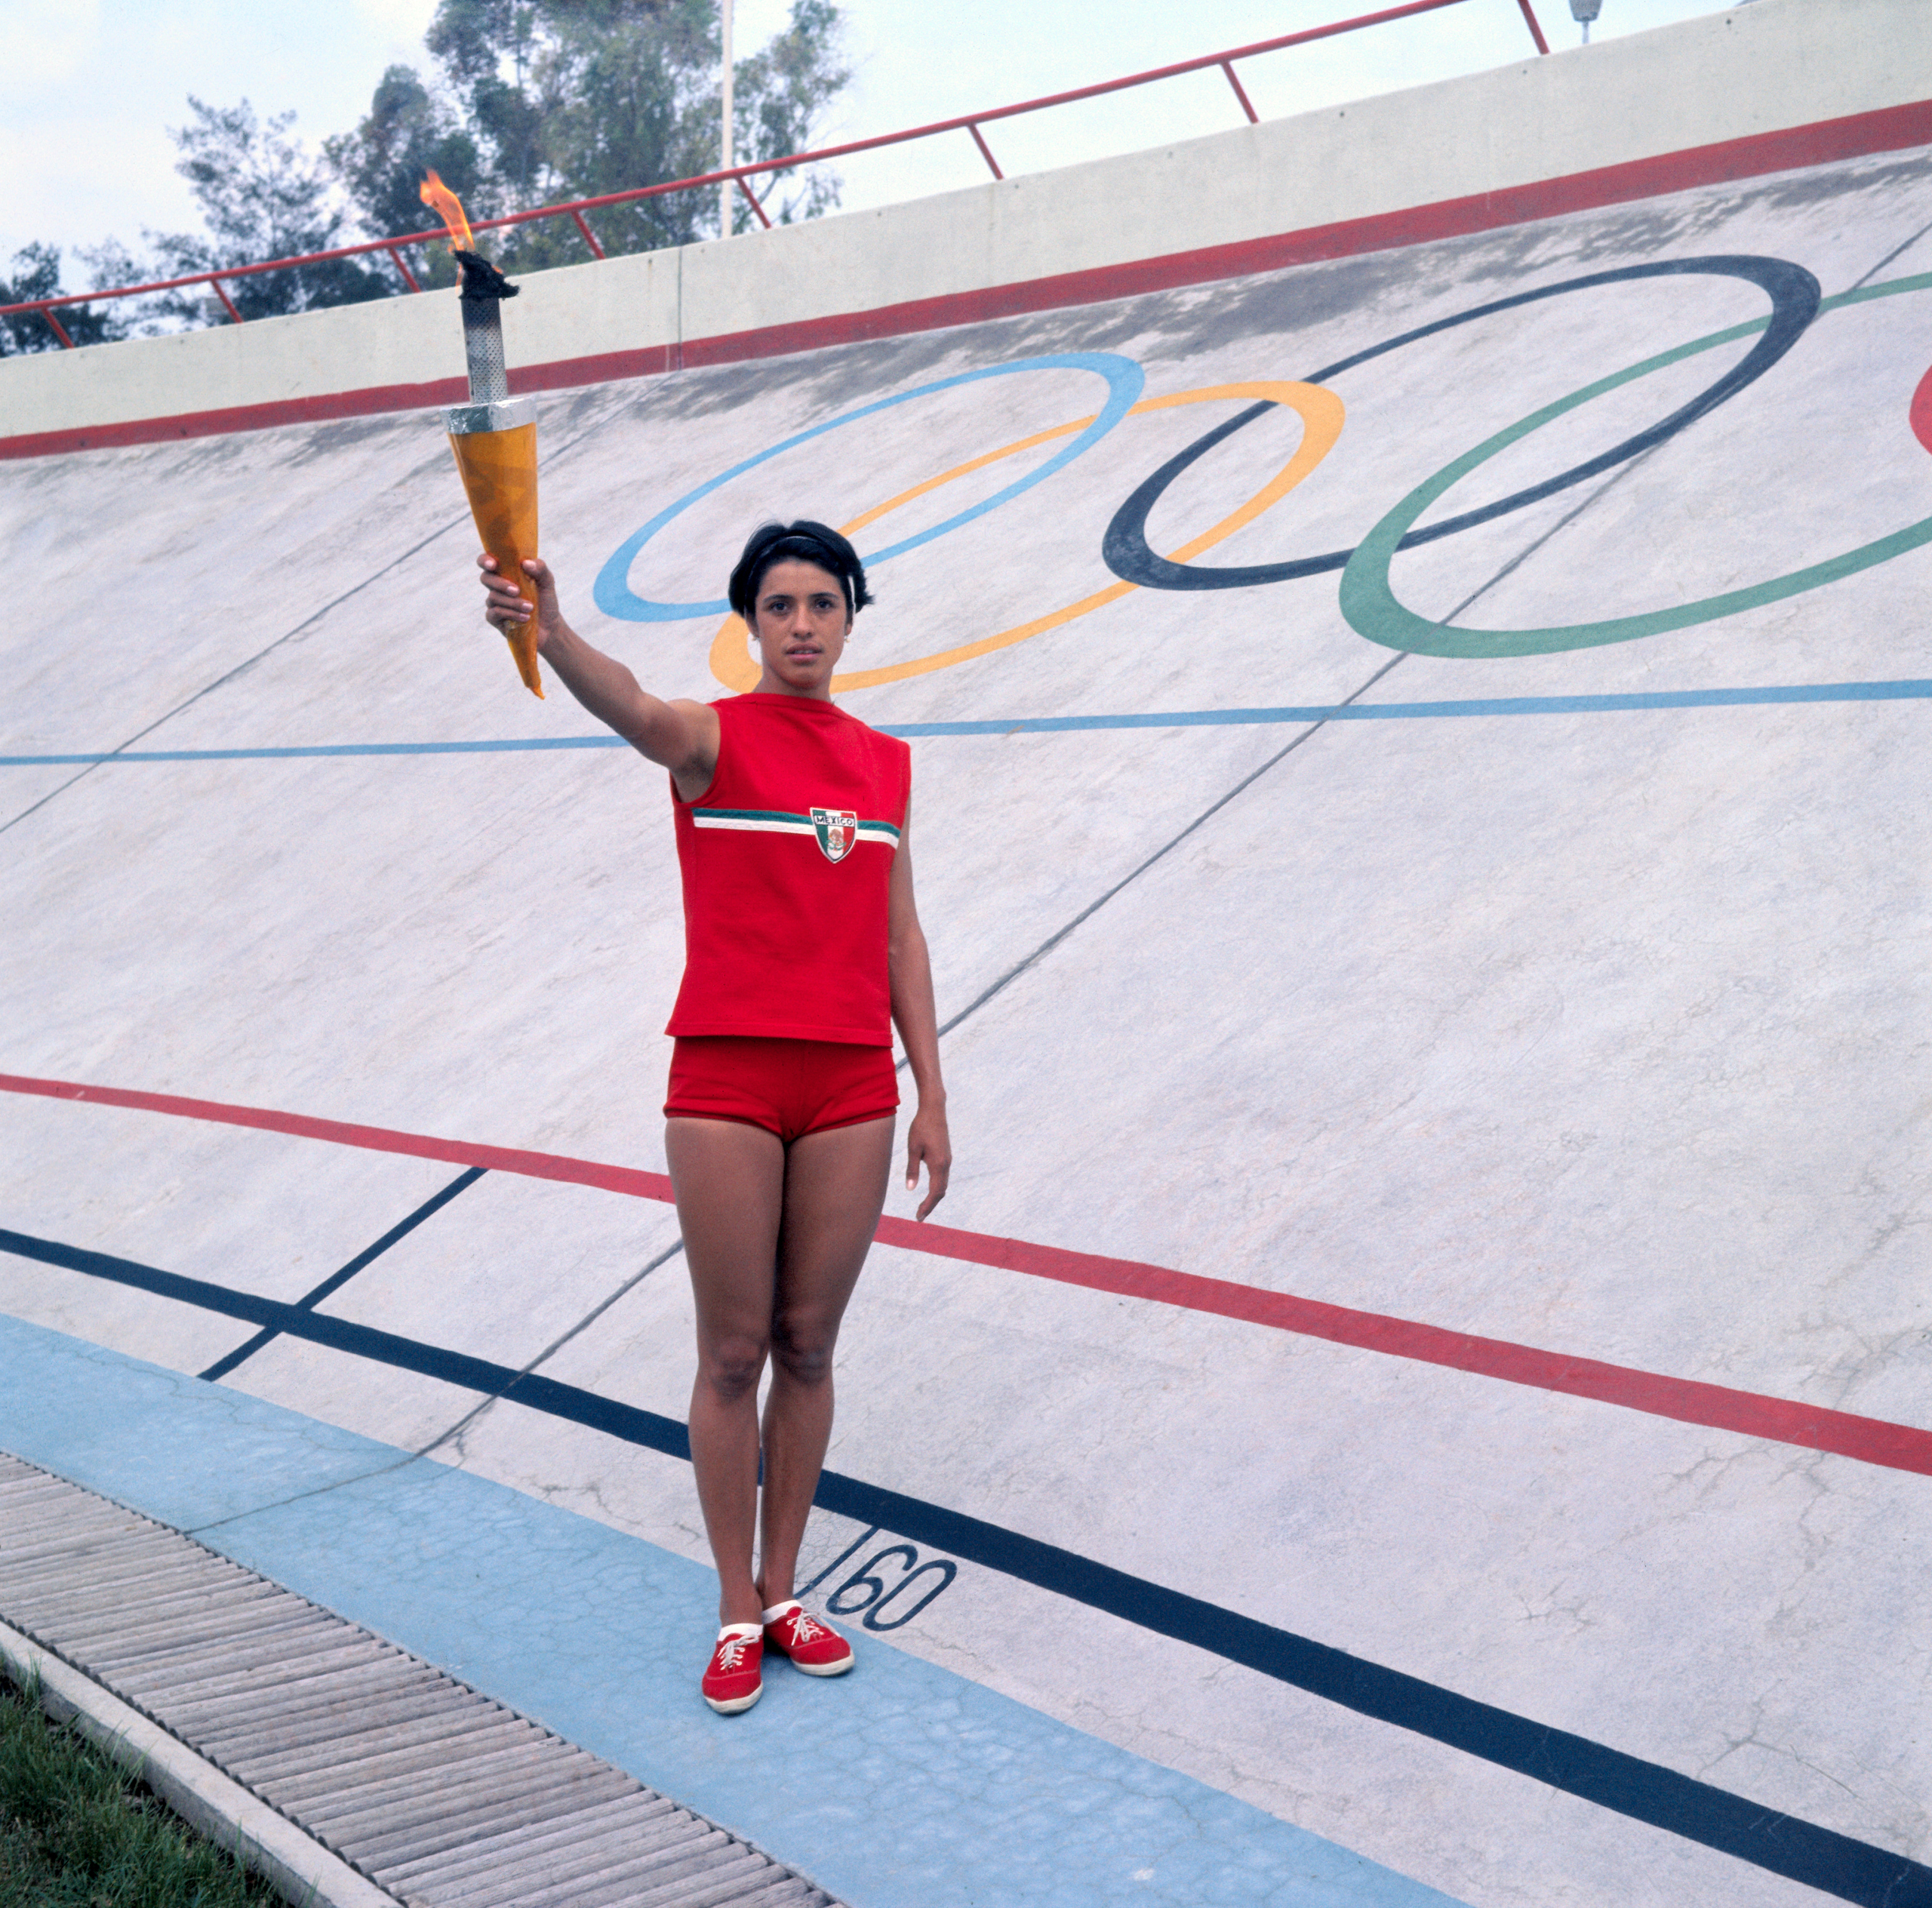 Enriqueta Basilio, 20, will be the first woman in history to carry the Olympic torch on its last leg and ignite the Olympic flame for the 1968 October game in Mexico City. Enriqueta, Mexico's 80-meter hurdle record-holder is shown here rehearsing on July 22, 1968 in Mexico City, Mexico